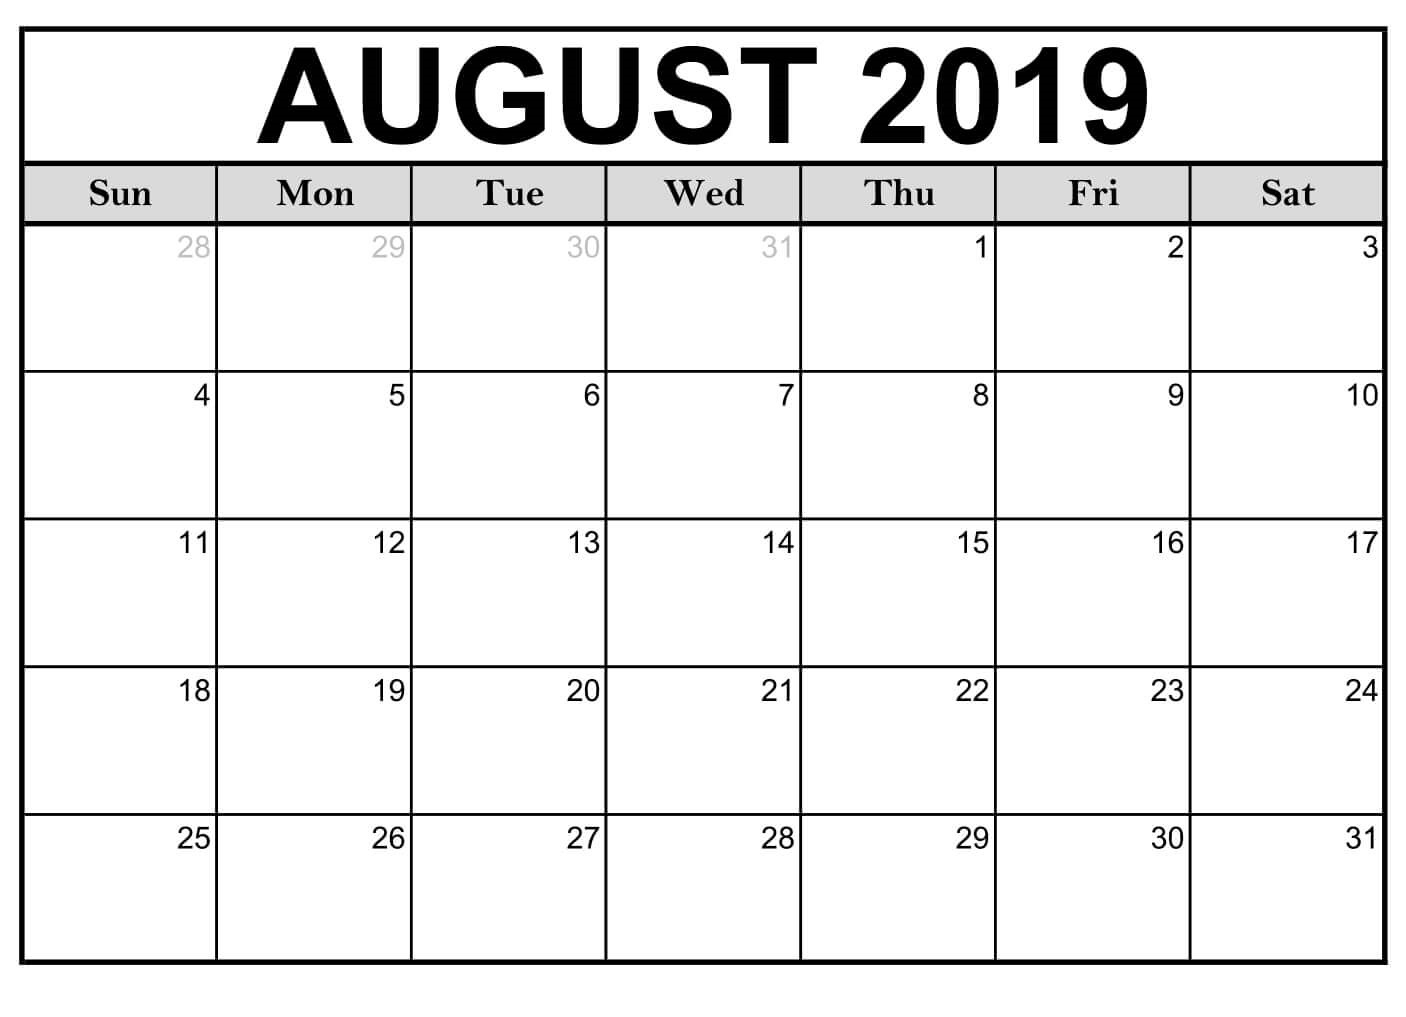 Blank August 2019 Calendar Page - Free Printable Calendar & Template with Blank Calender Of August